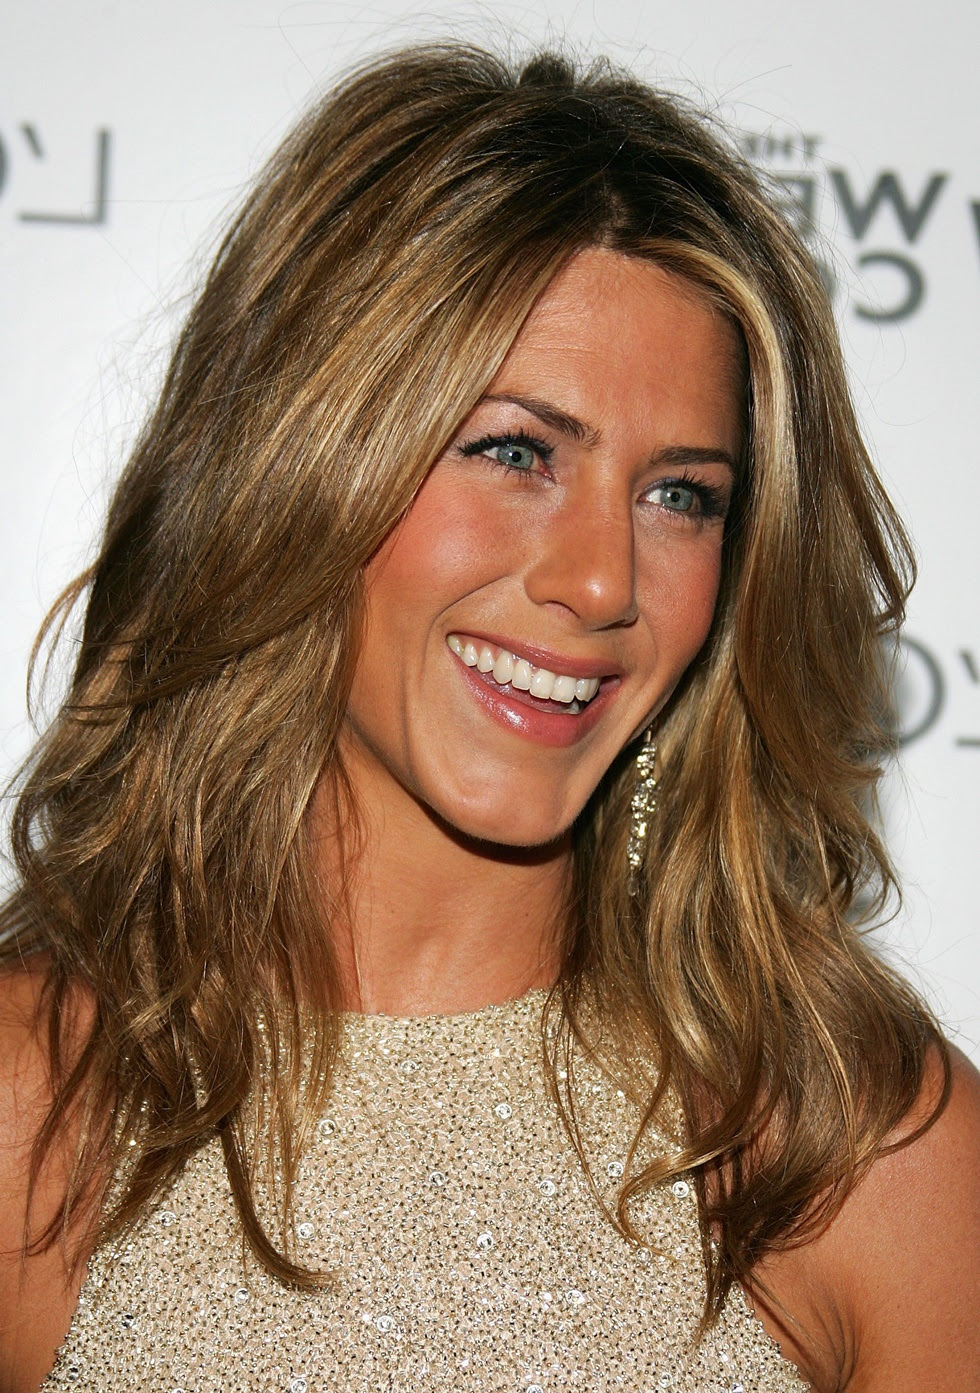 18 Best Long Hairstyles for Women Over 40